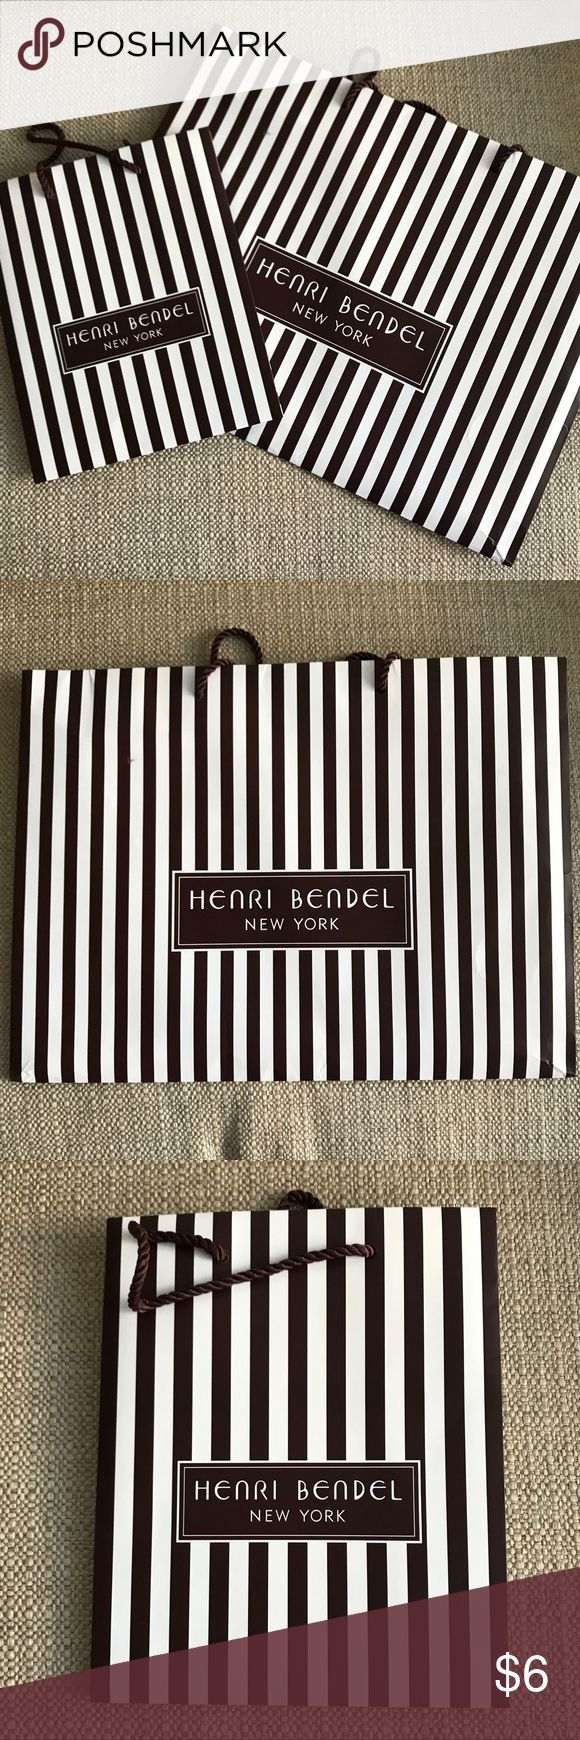 Authentic HB Shopping Bags Great for staging or for those who collect. Multiple available. (May have slight creasing from storage.)  Sellers Notes: No Trades, Prices are firm, and Bundle your likes to receive private offer!    Same Day shipping before 3pm (Mon- Fri) Noon on Saturday (PST) henri bendel Other